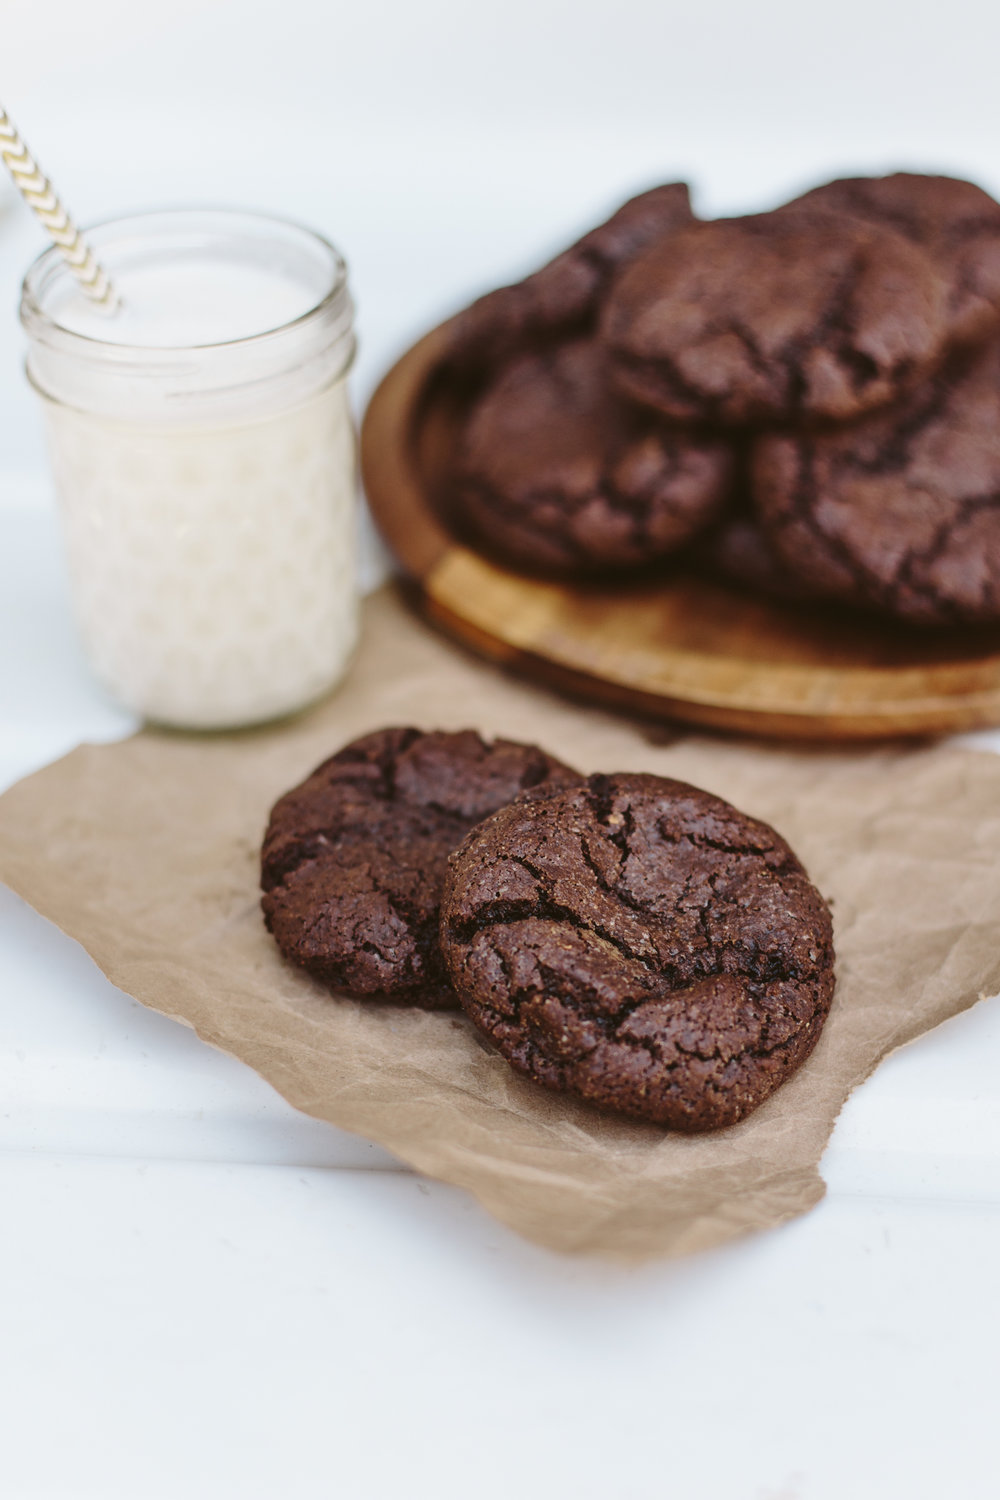 Keto Low Carb Flourless Chocolate Cookies